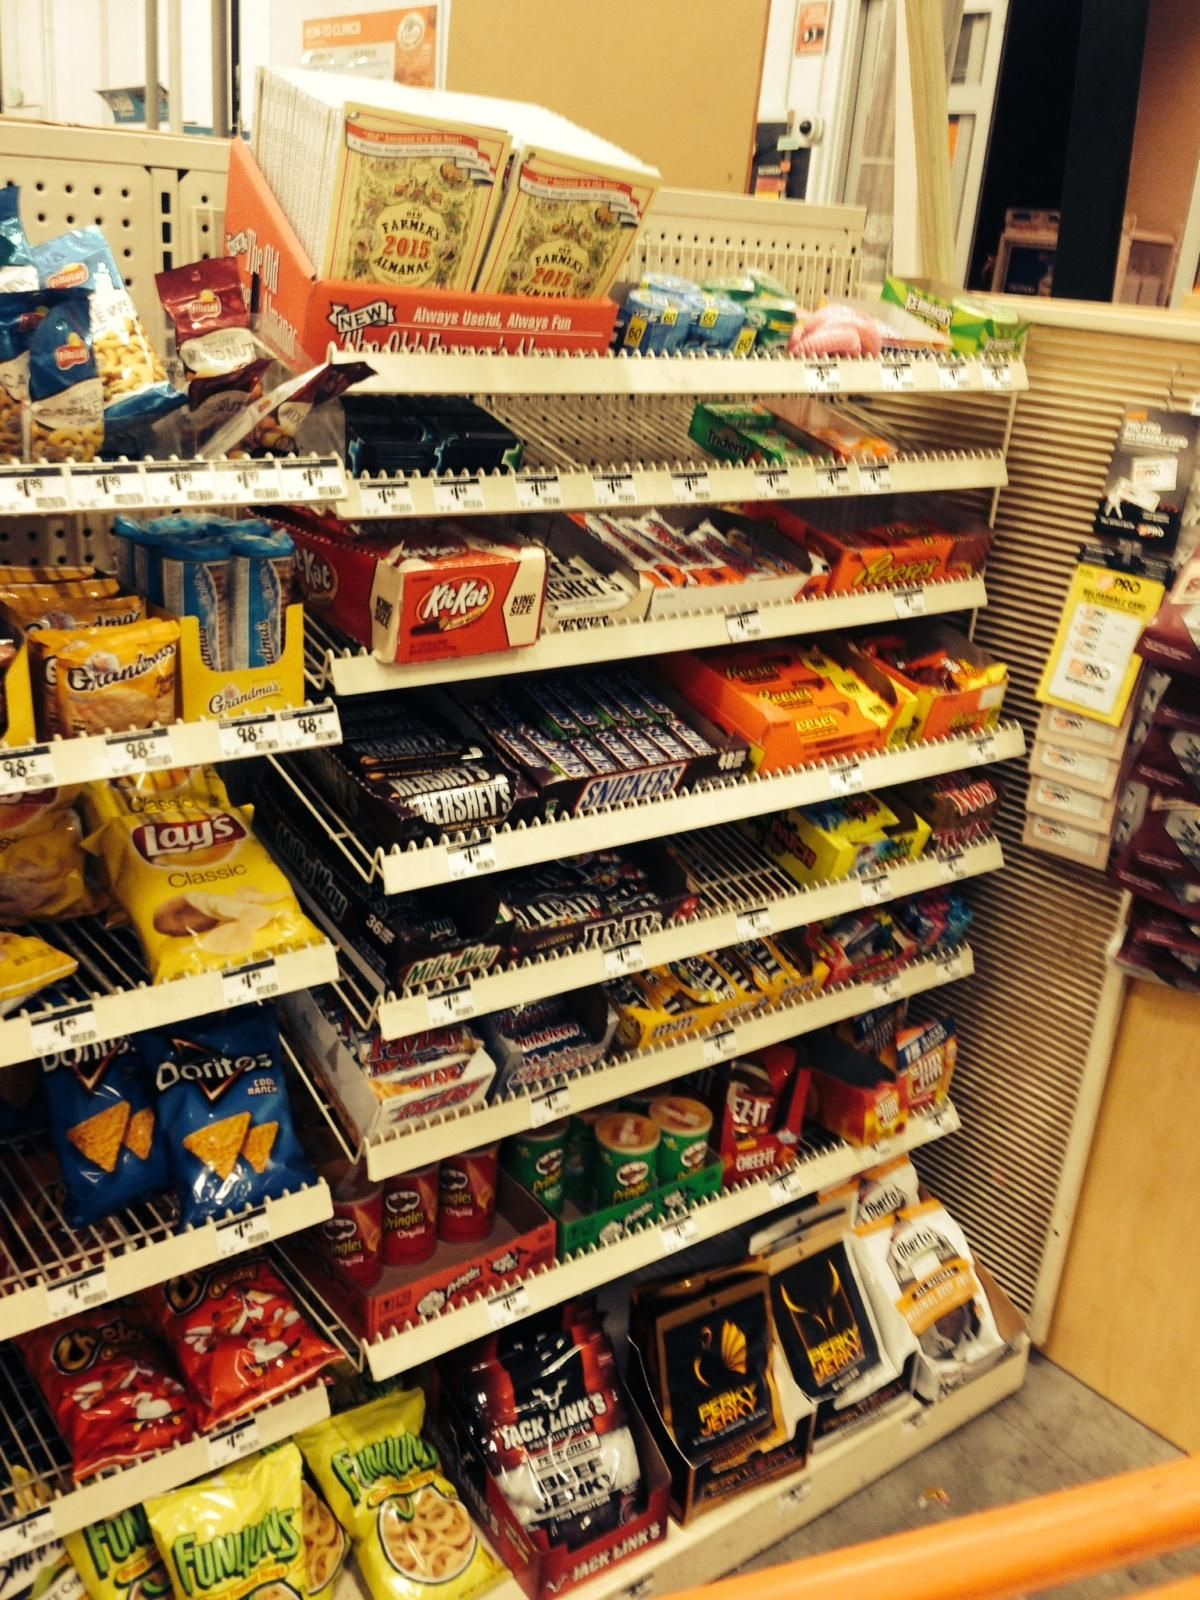 Unfortunately this Home Depot pushes candy at checkout No one